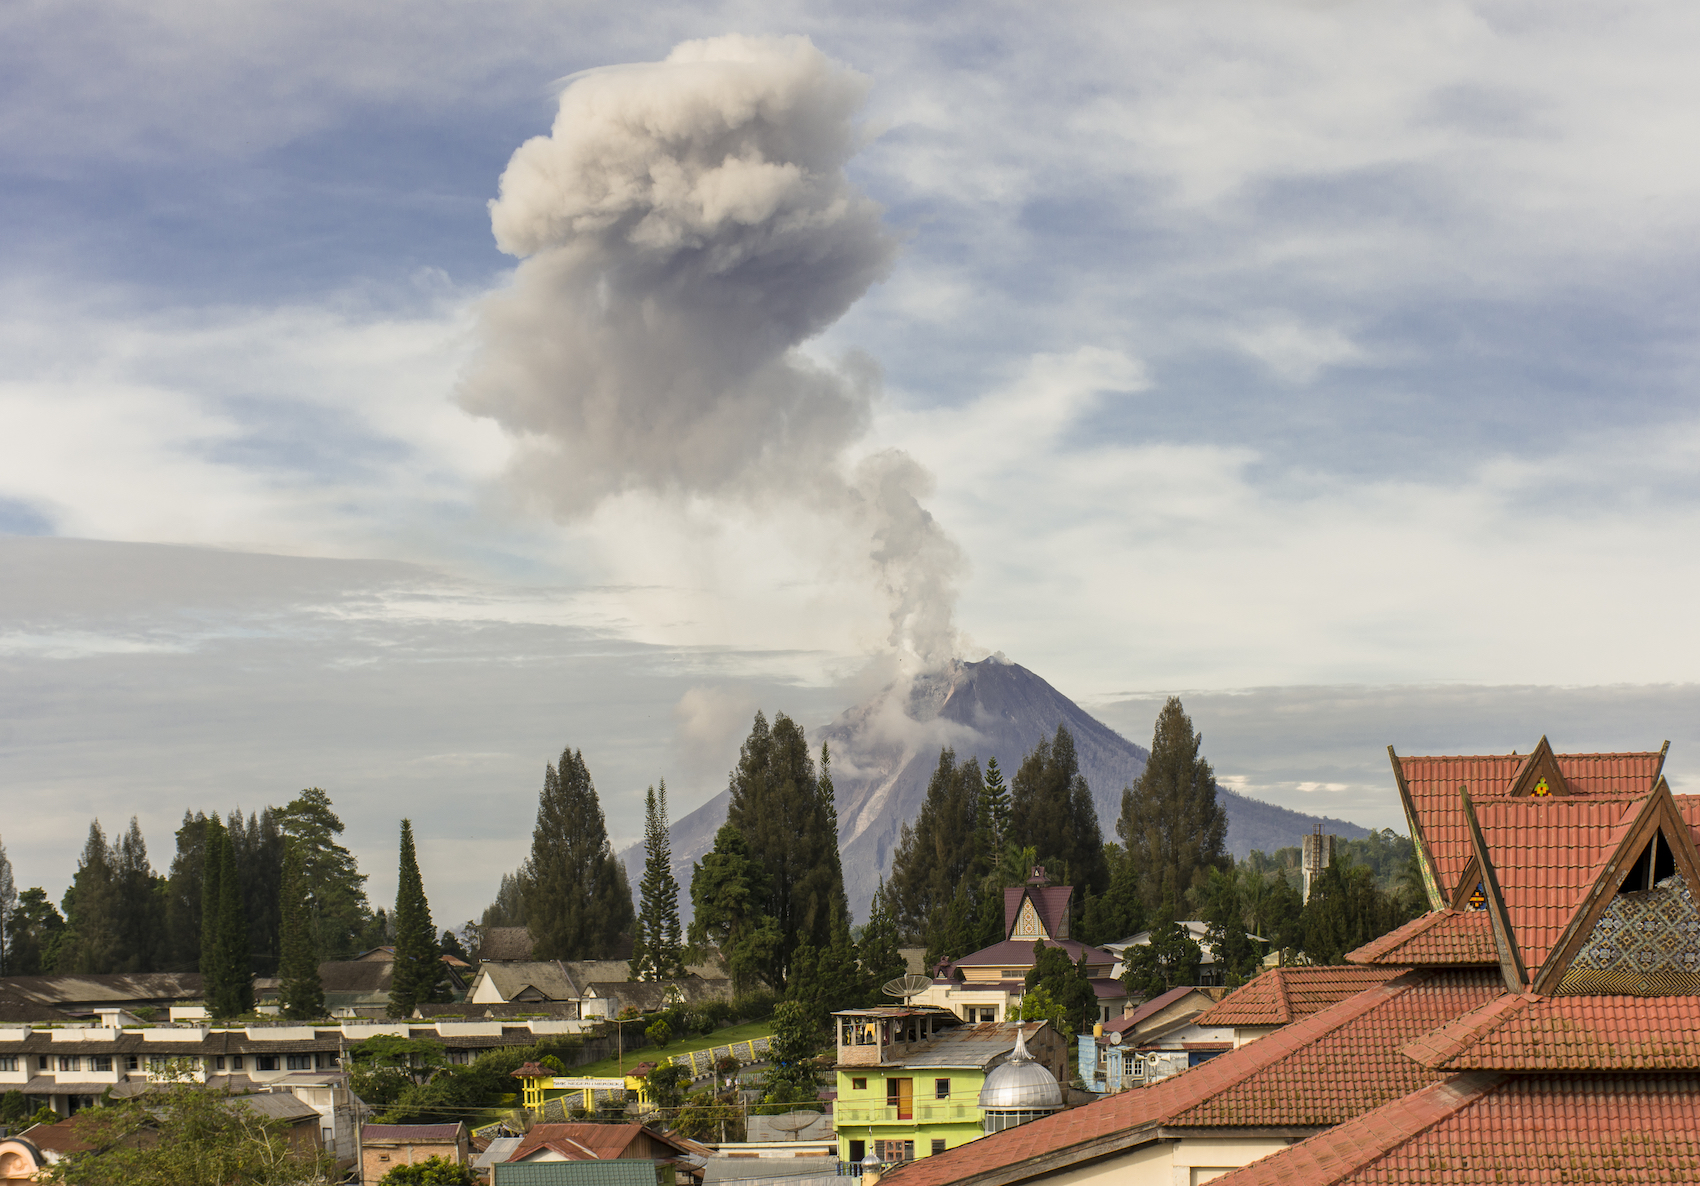 Mount Sinabung in Sumatra, Indonesia erupted on Wednesday, August 3rd, spewing ash almost three miles into the air.